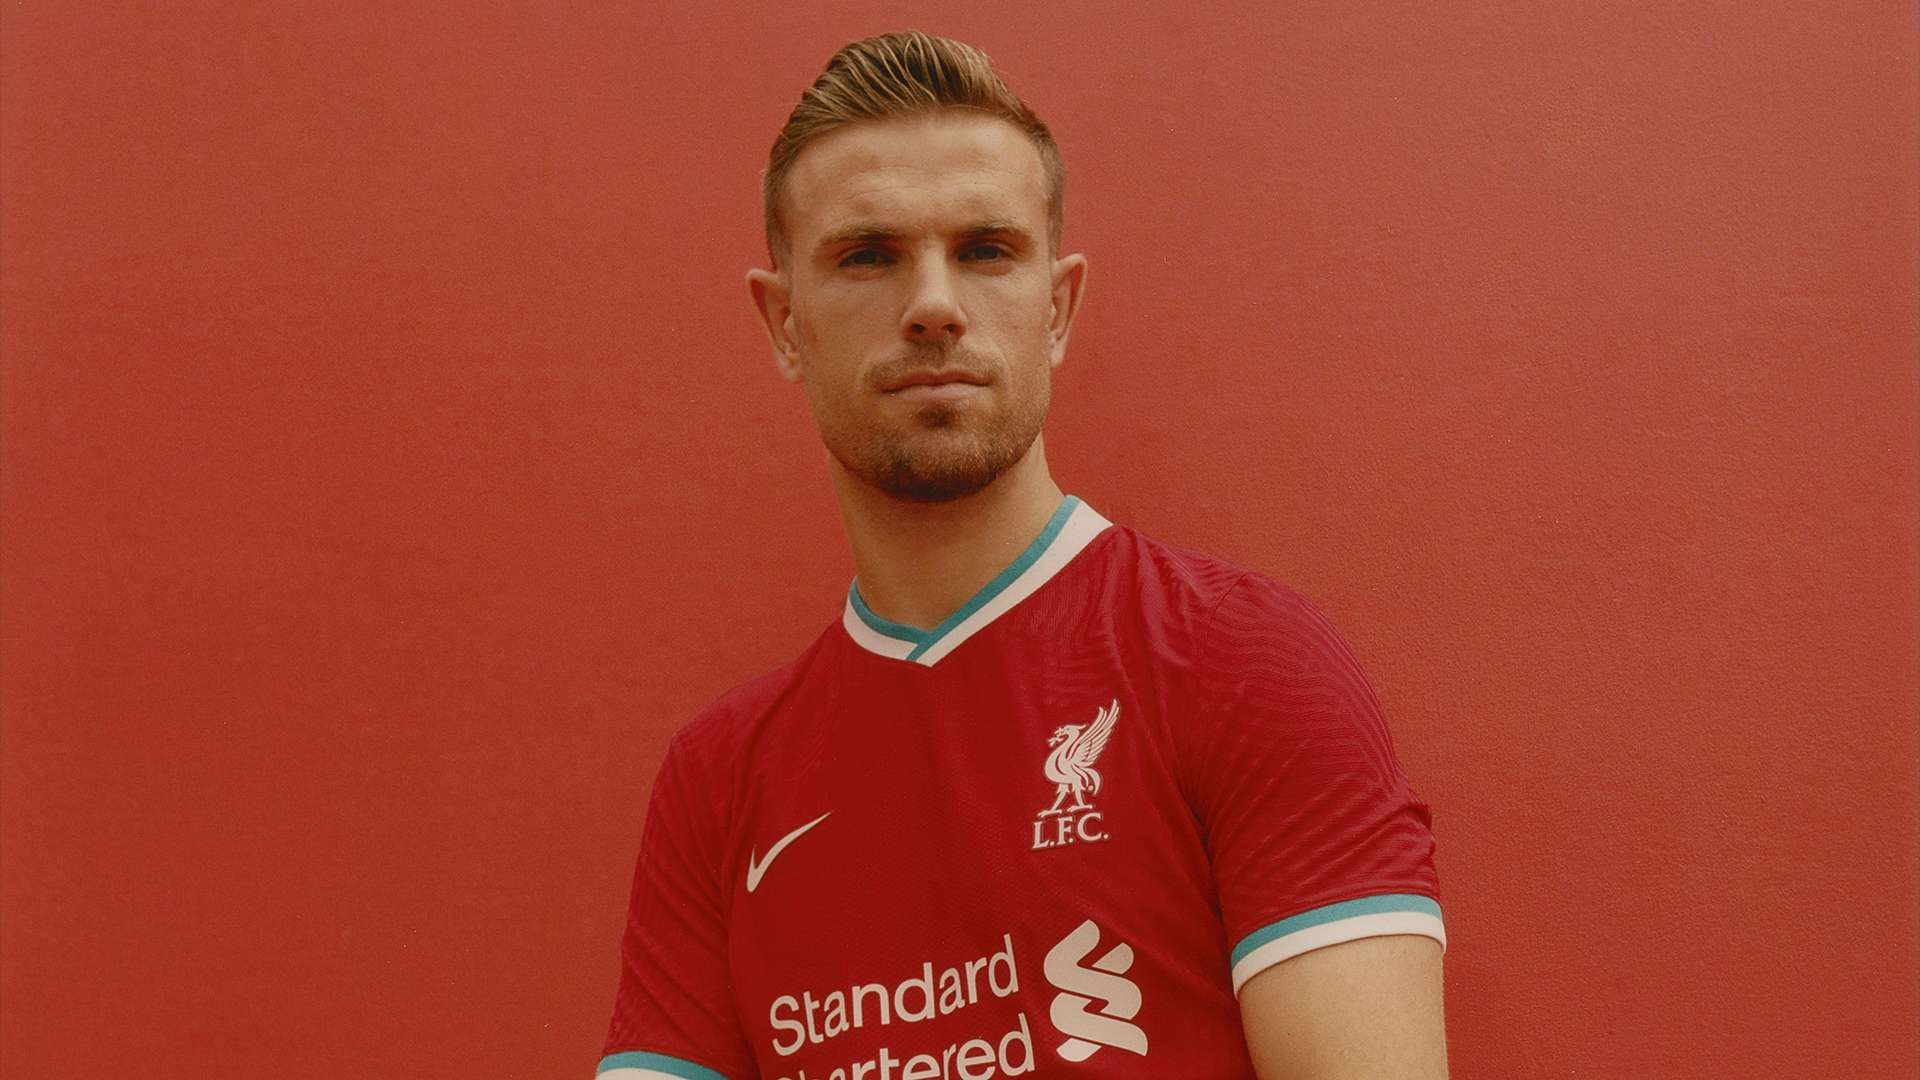 Liverpool S 2020 21 Kit New Home And Away Jersey Styles And Release Dates Goal Com